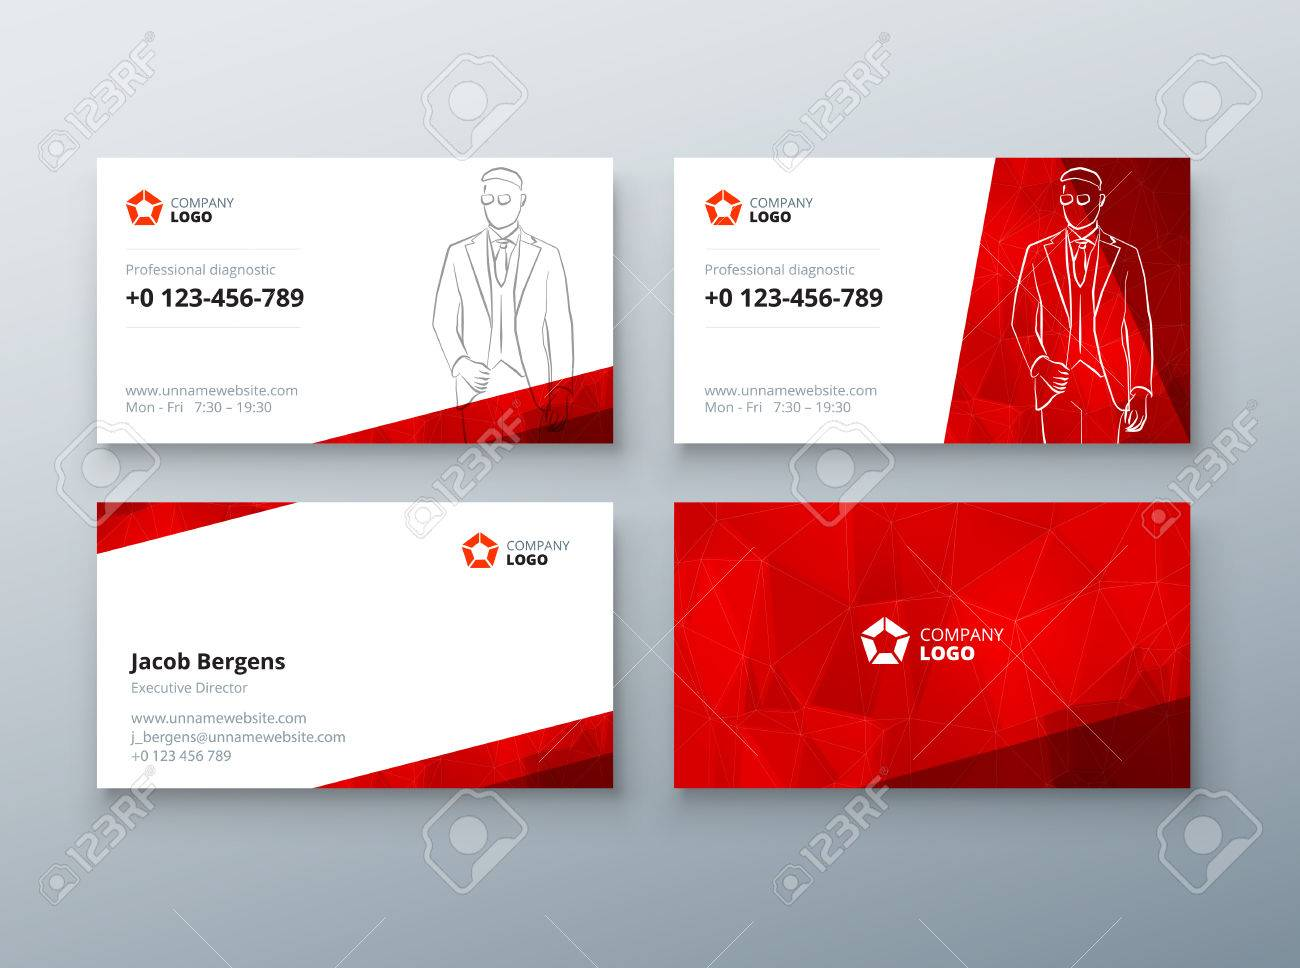 Business card design red business card template for personal business card design red business card template for personal or corporate use layout with friedricerecipe Gallery